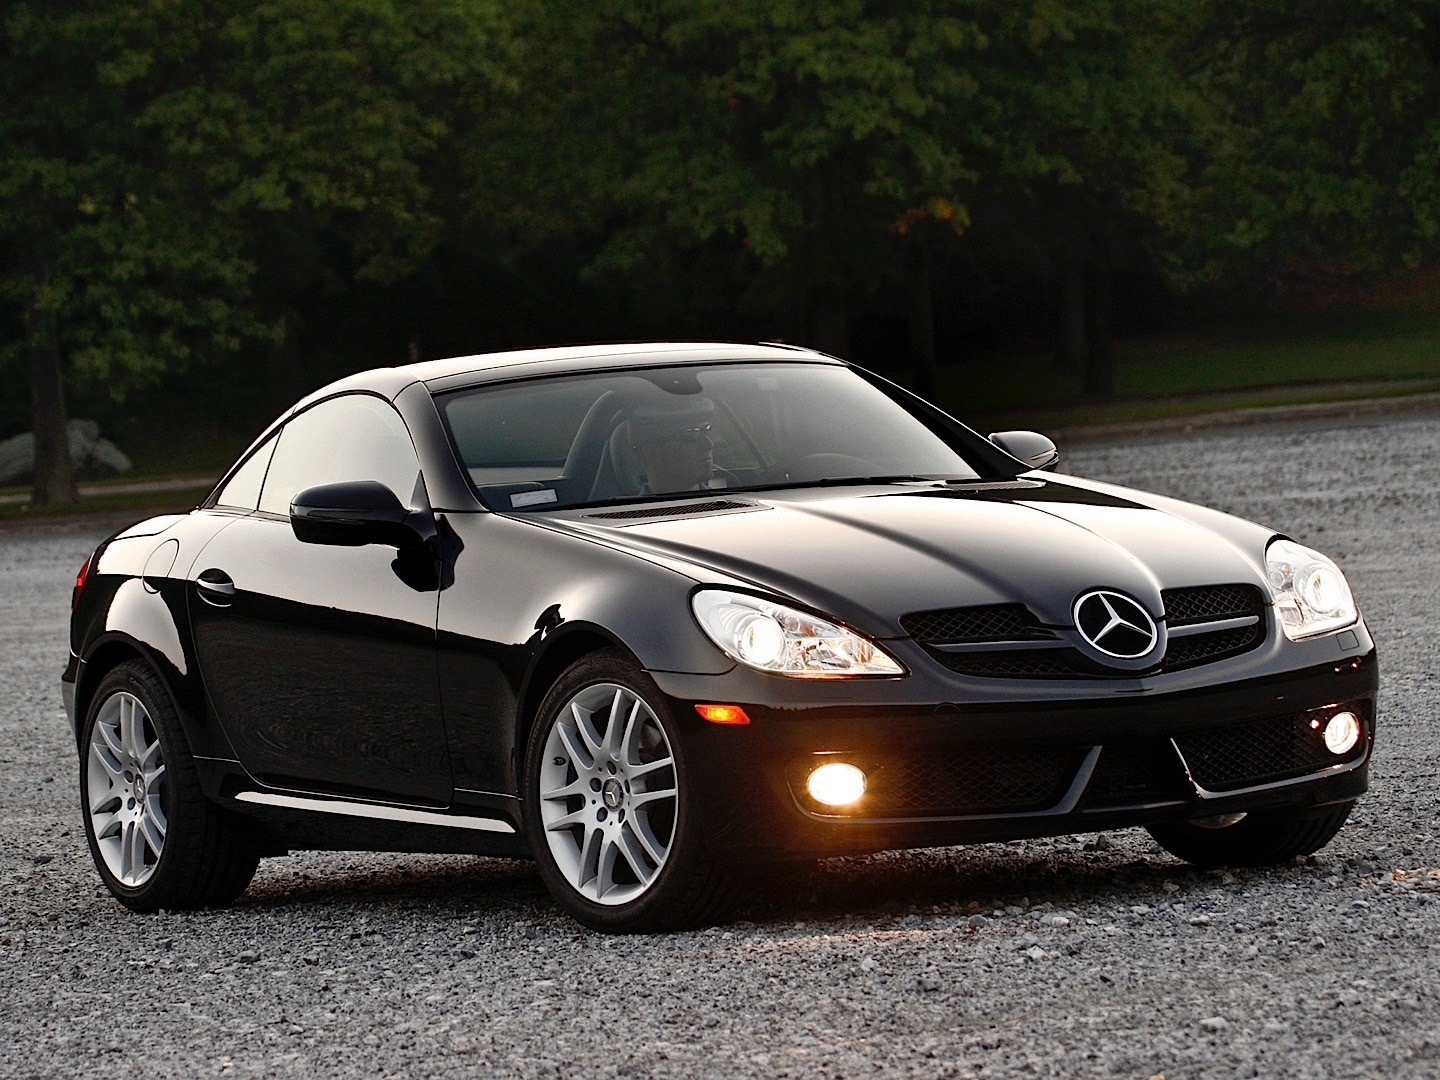 Mercedes benz slk r171 specs 2008 2009 2010 2011 for Mercedes benz cars